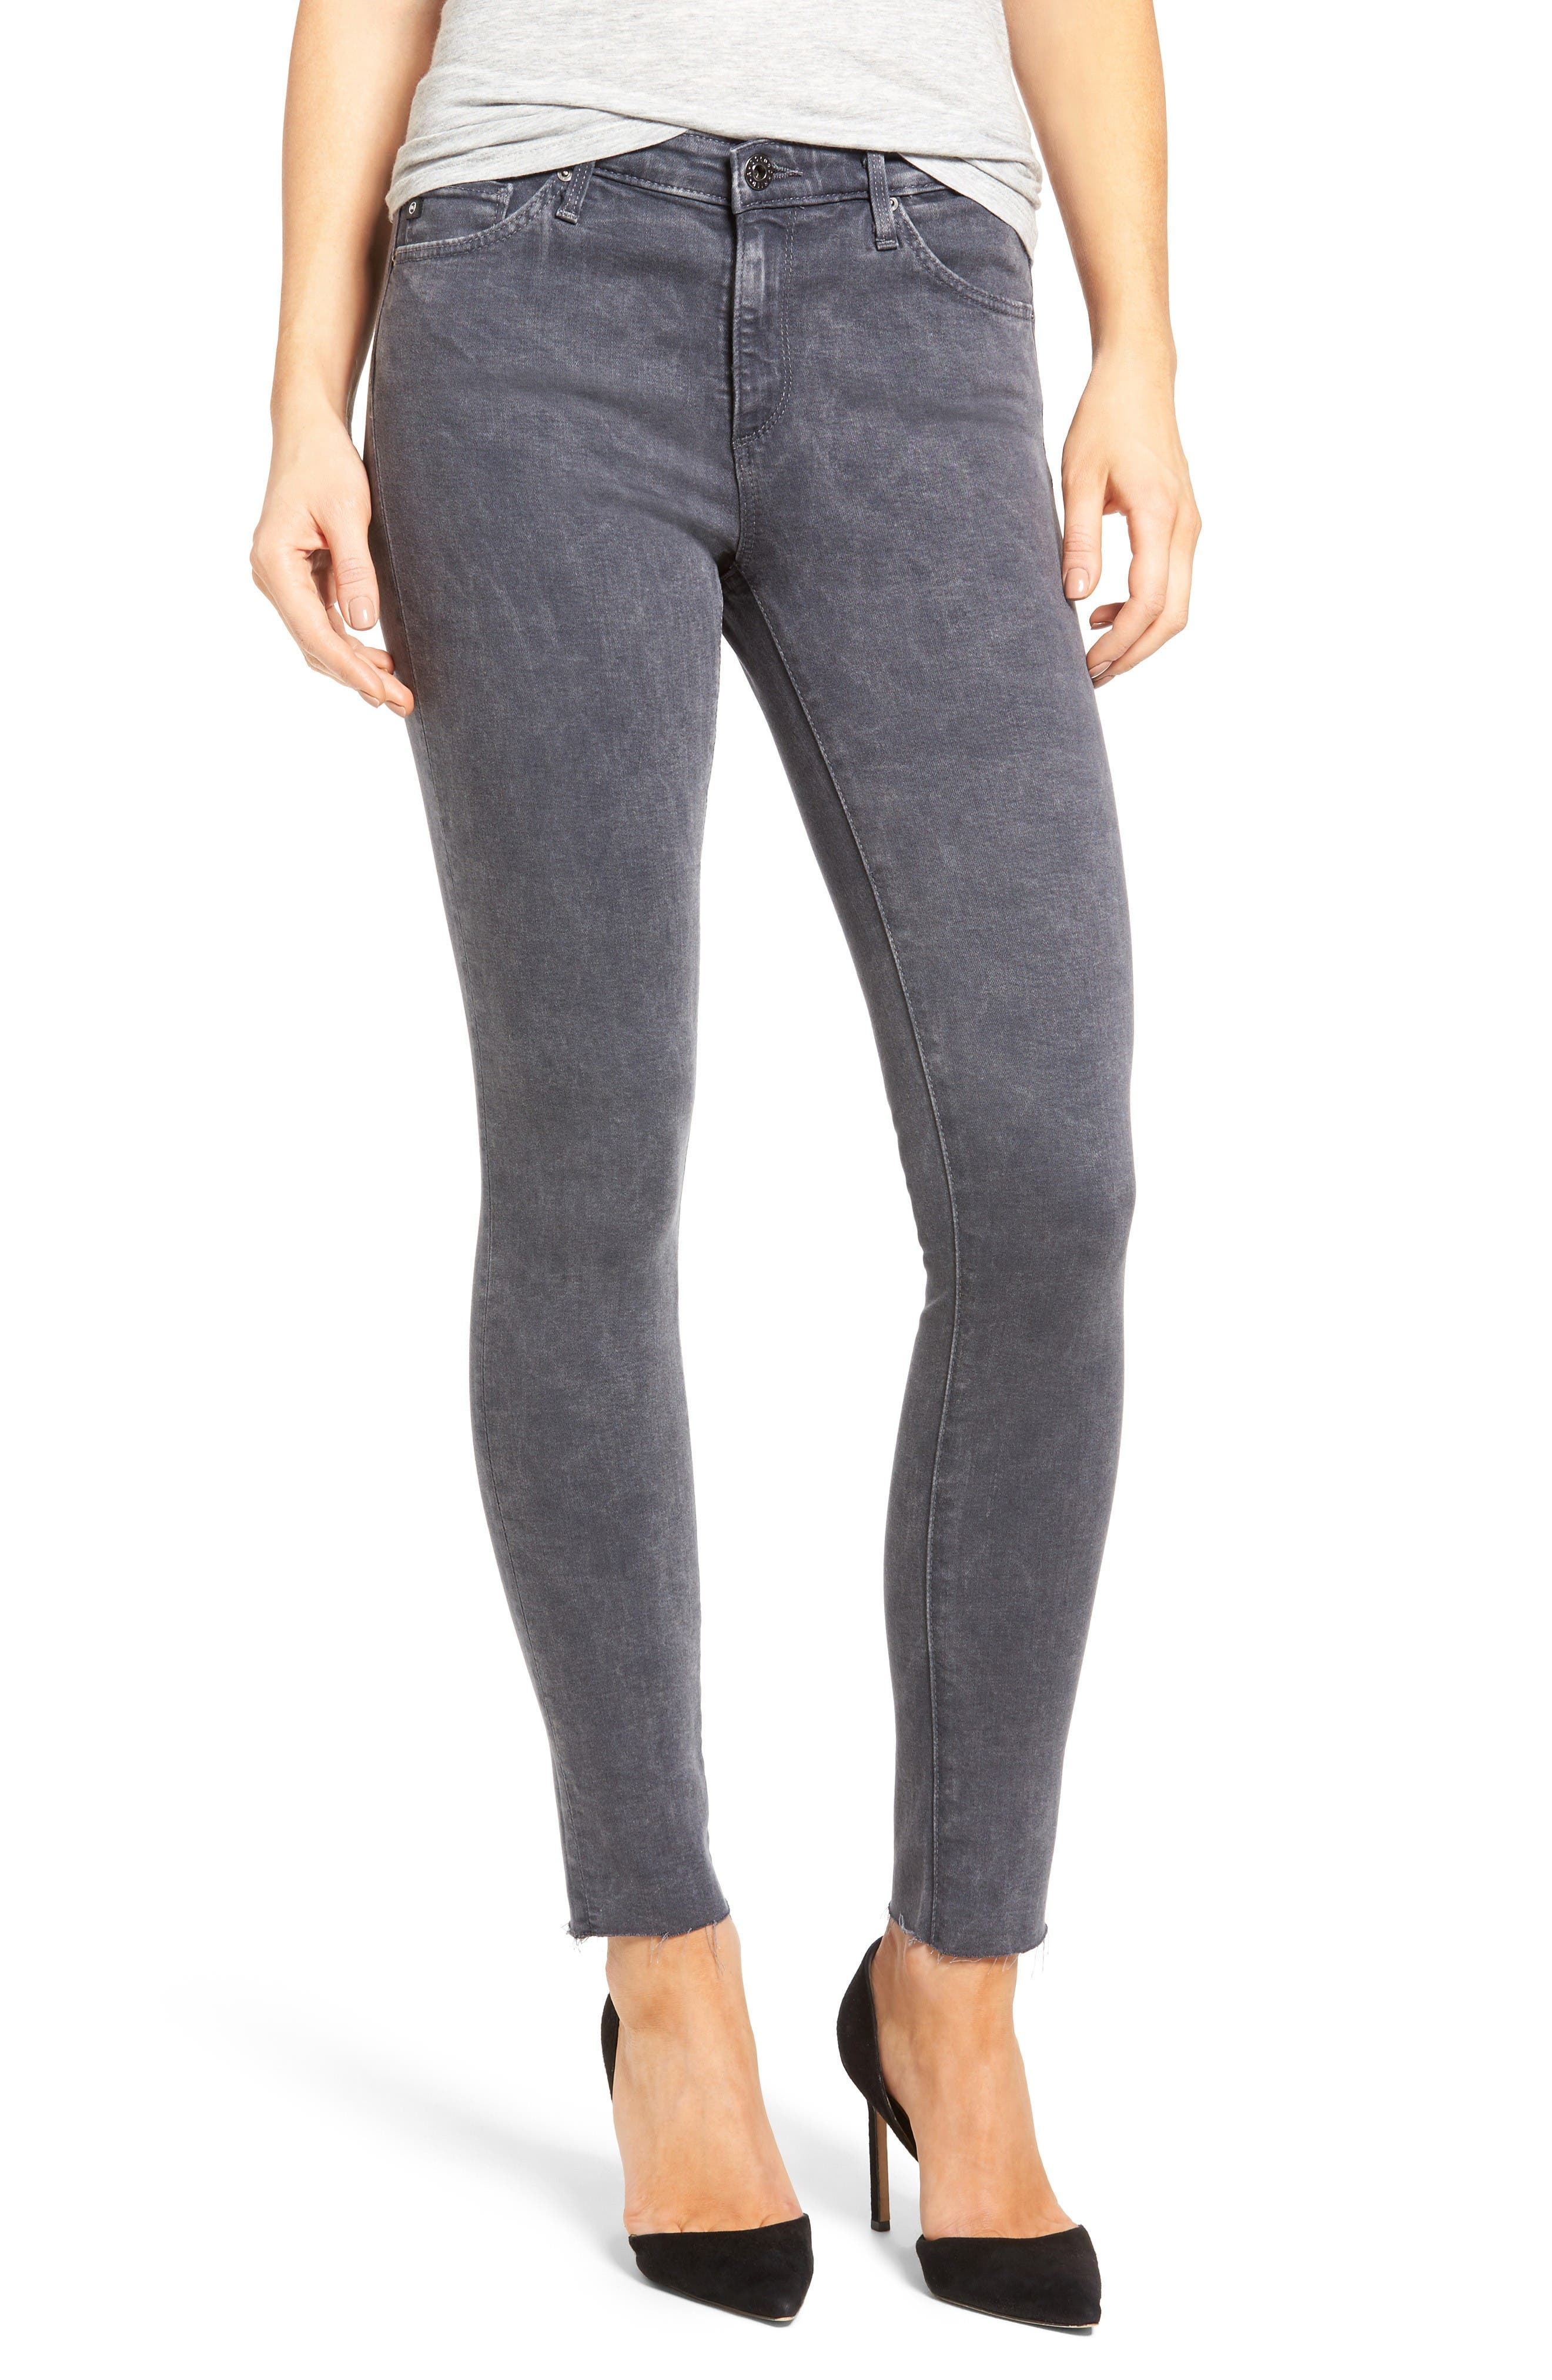 Alternate Image 1 Selected - AG Middi Ankle Skinny Jeans (Erosion)